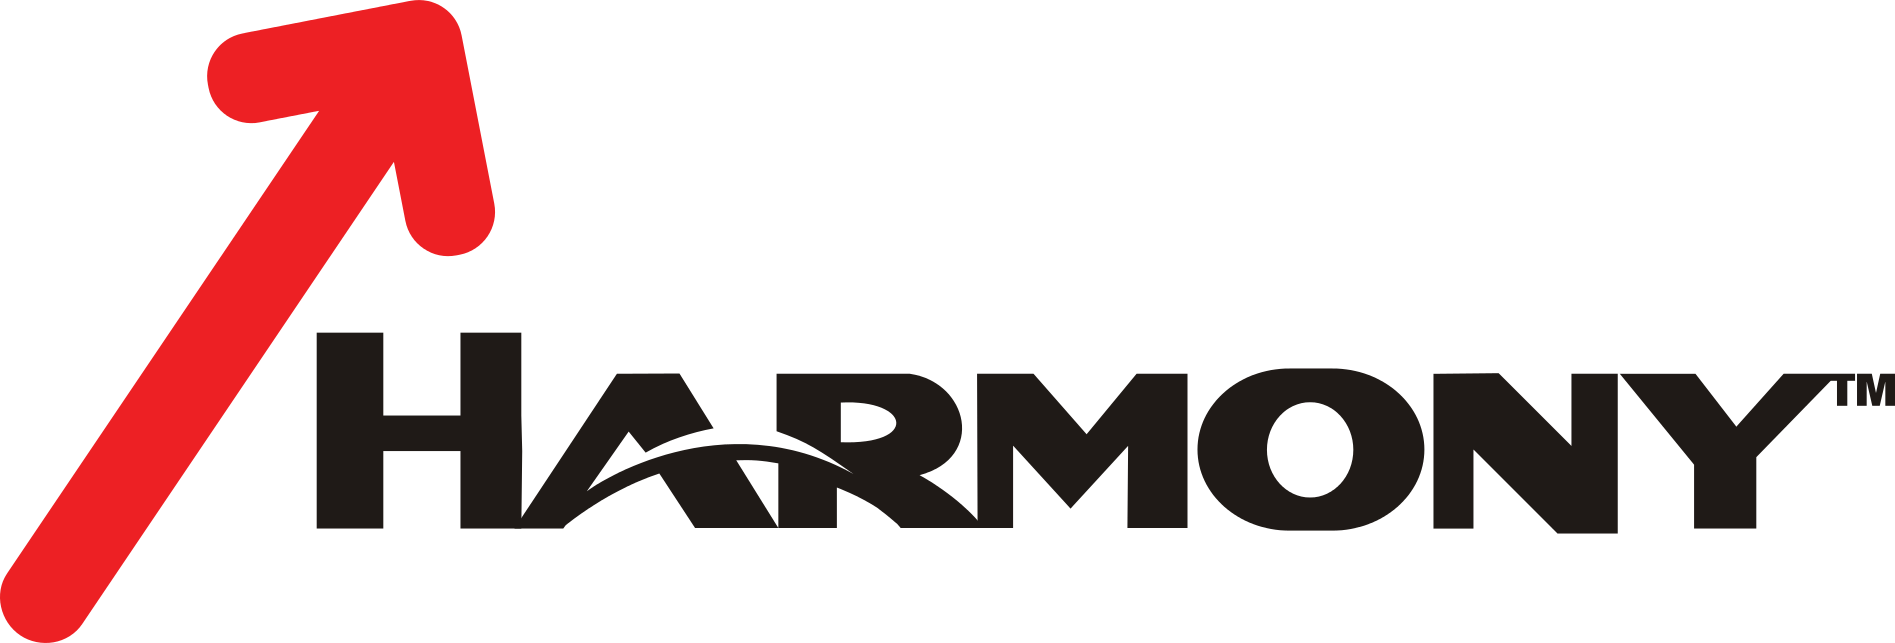 Harmony gold jobs download free clipart with a transparent.